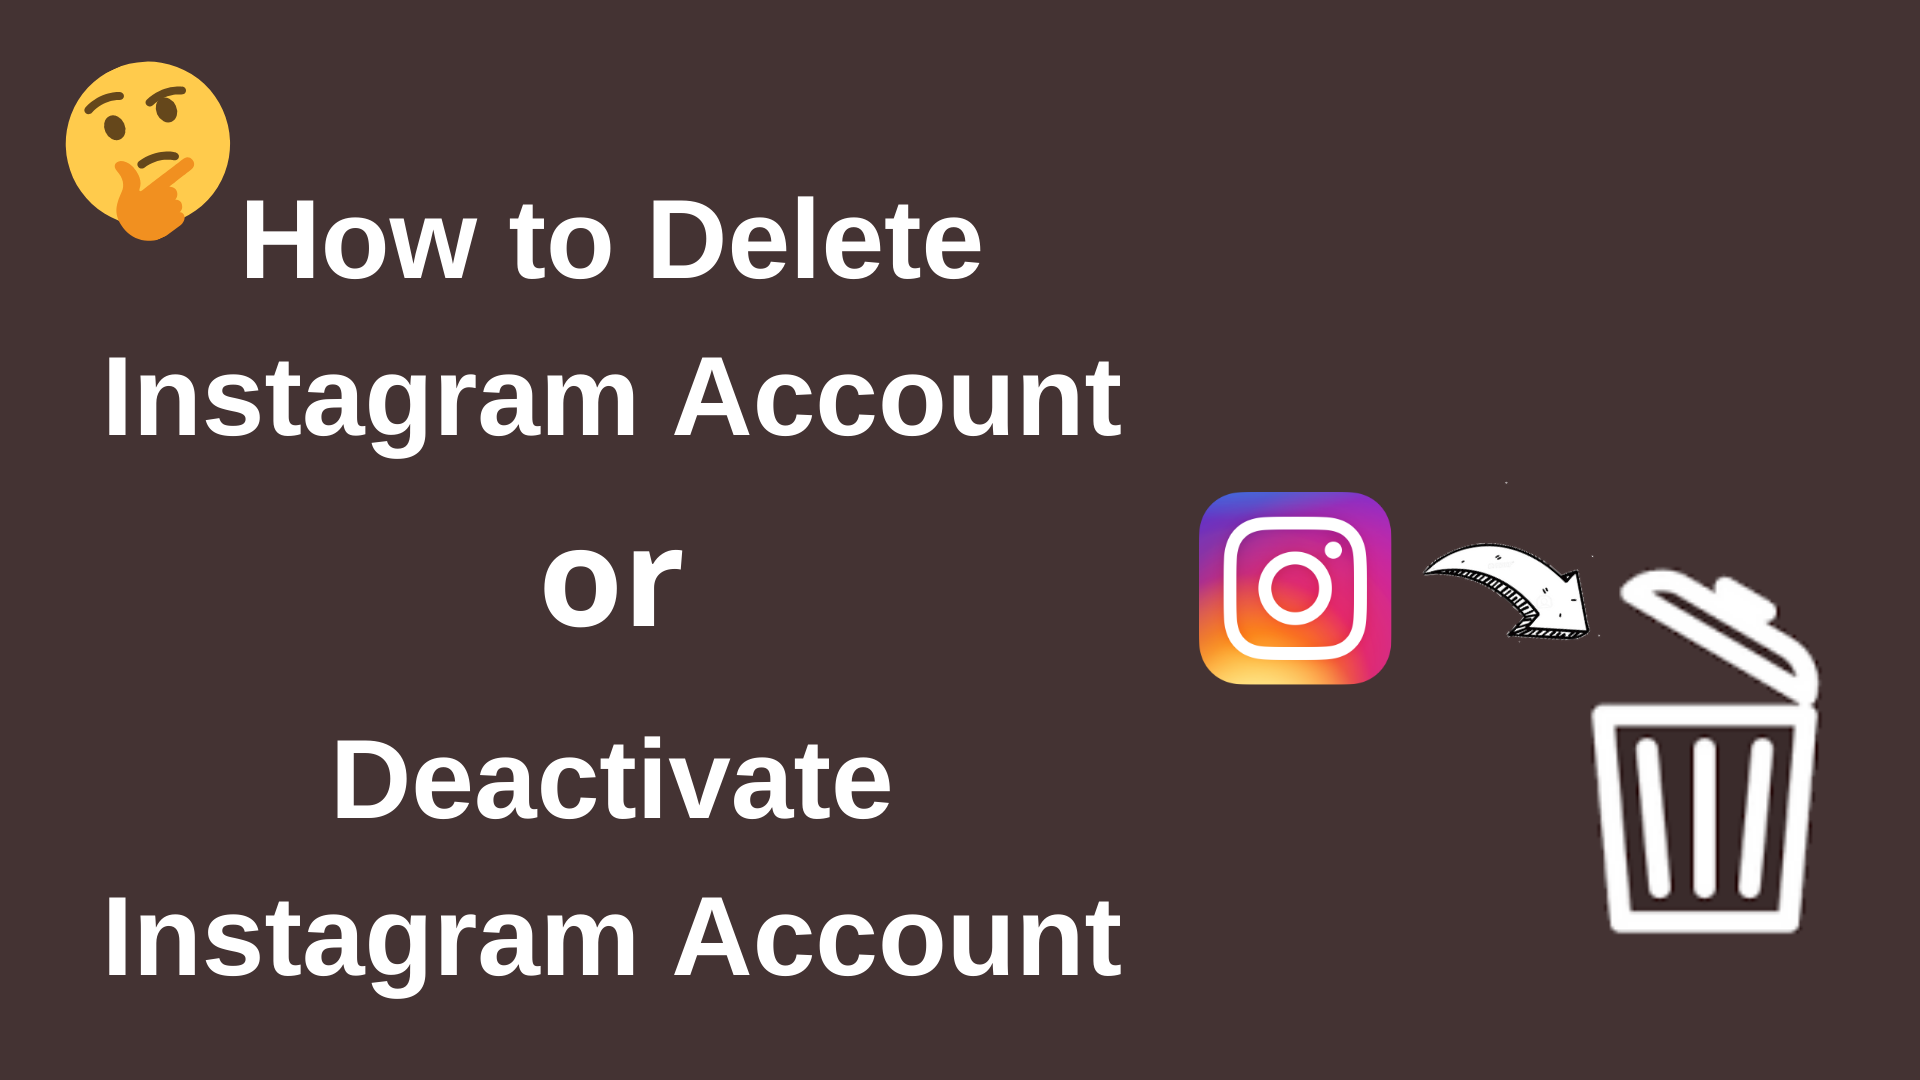 How to Delete Instagram Account (With Pictures) 2020